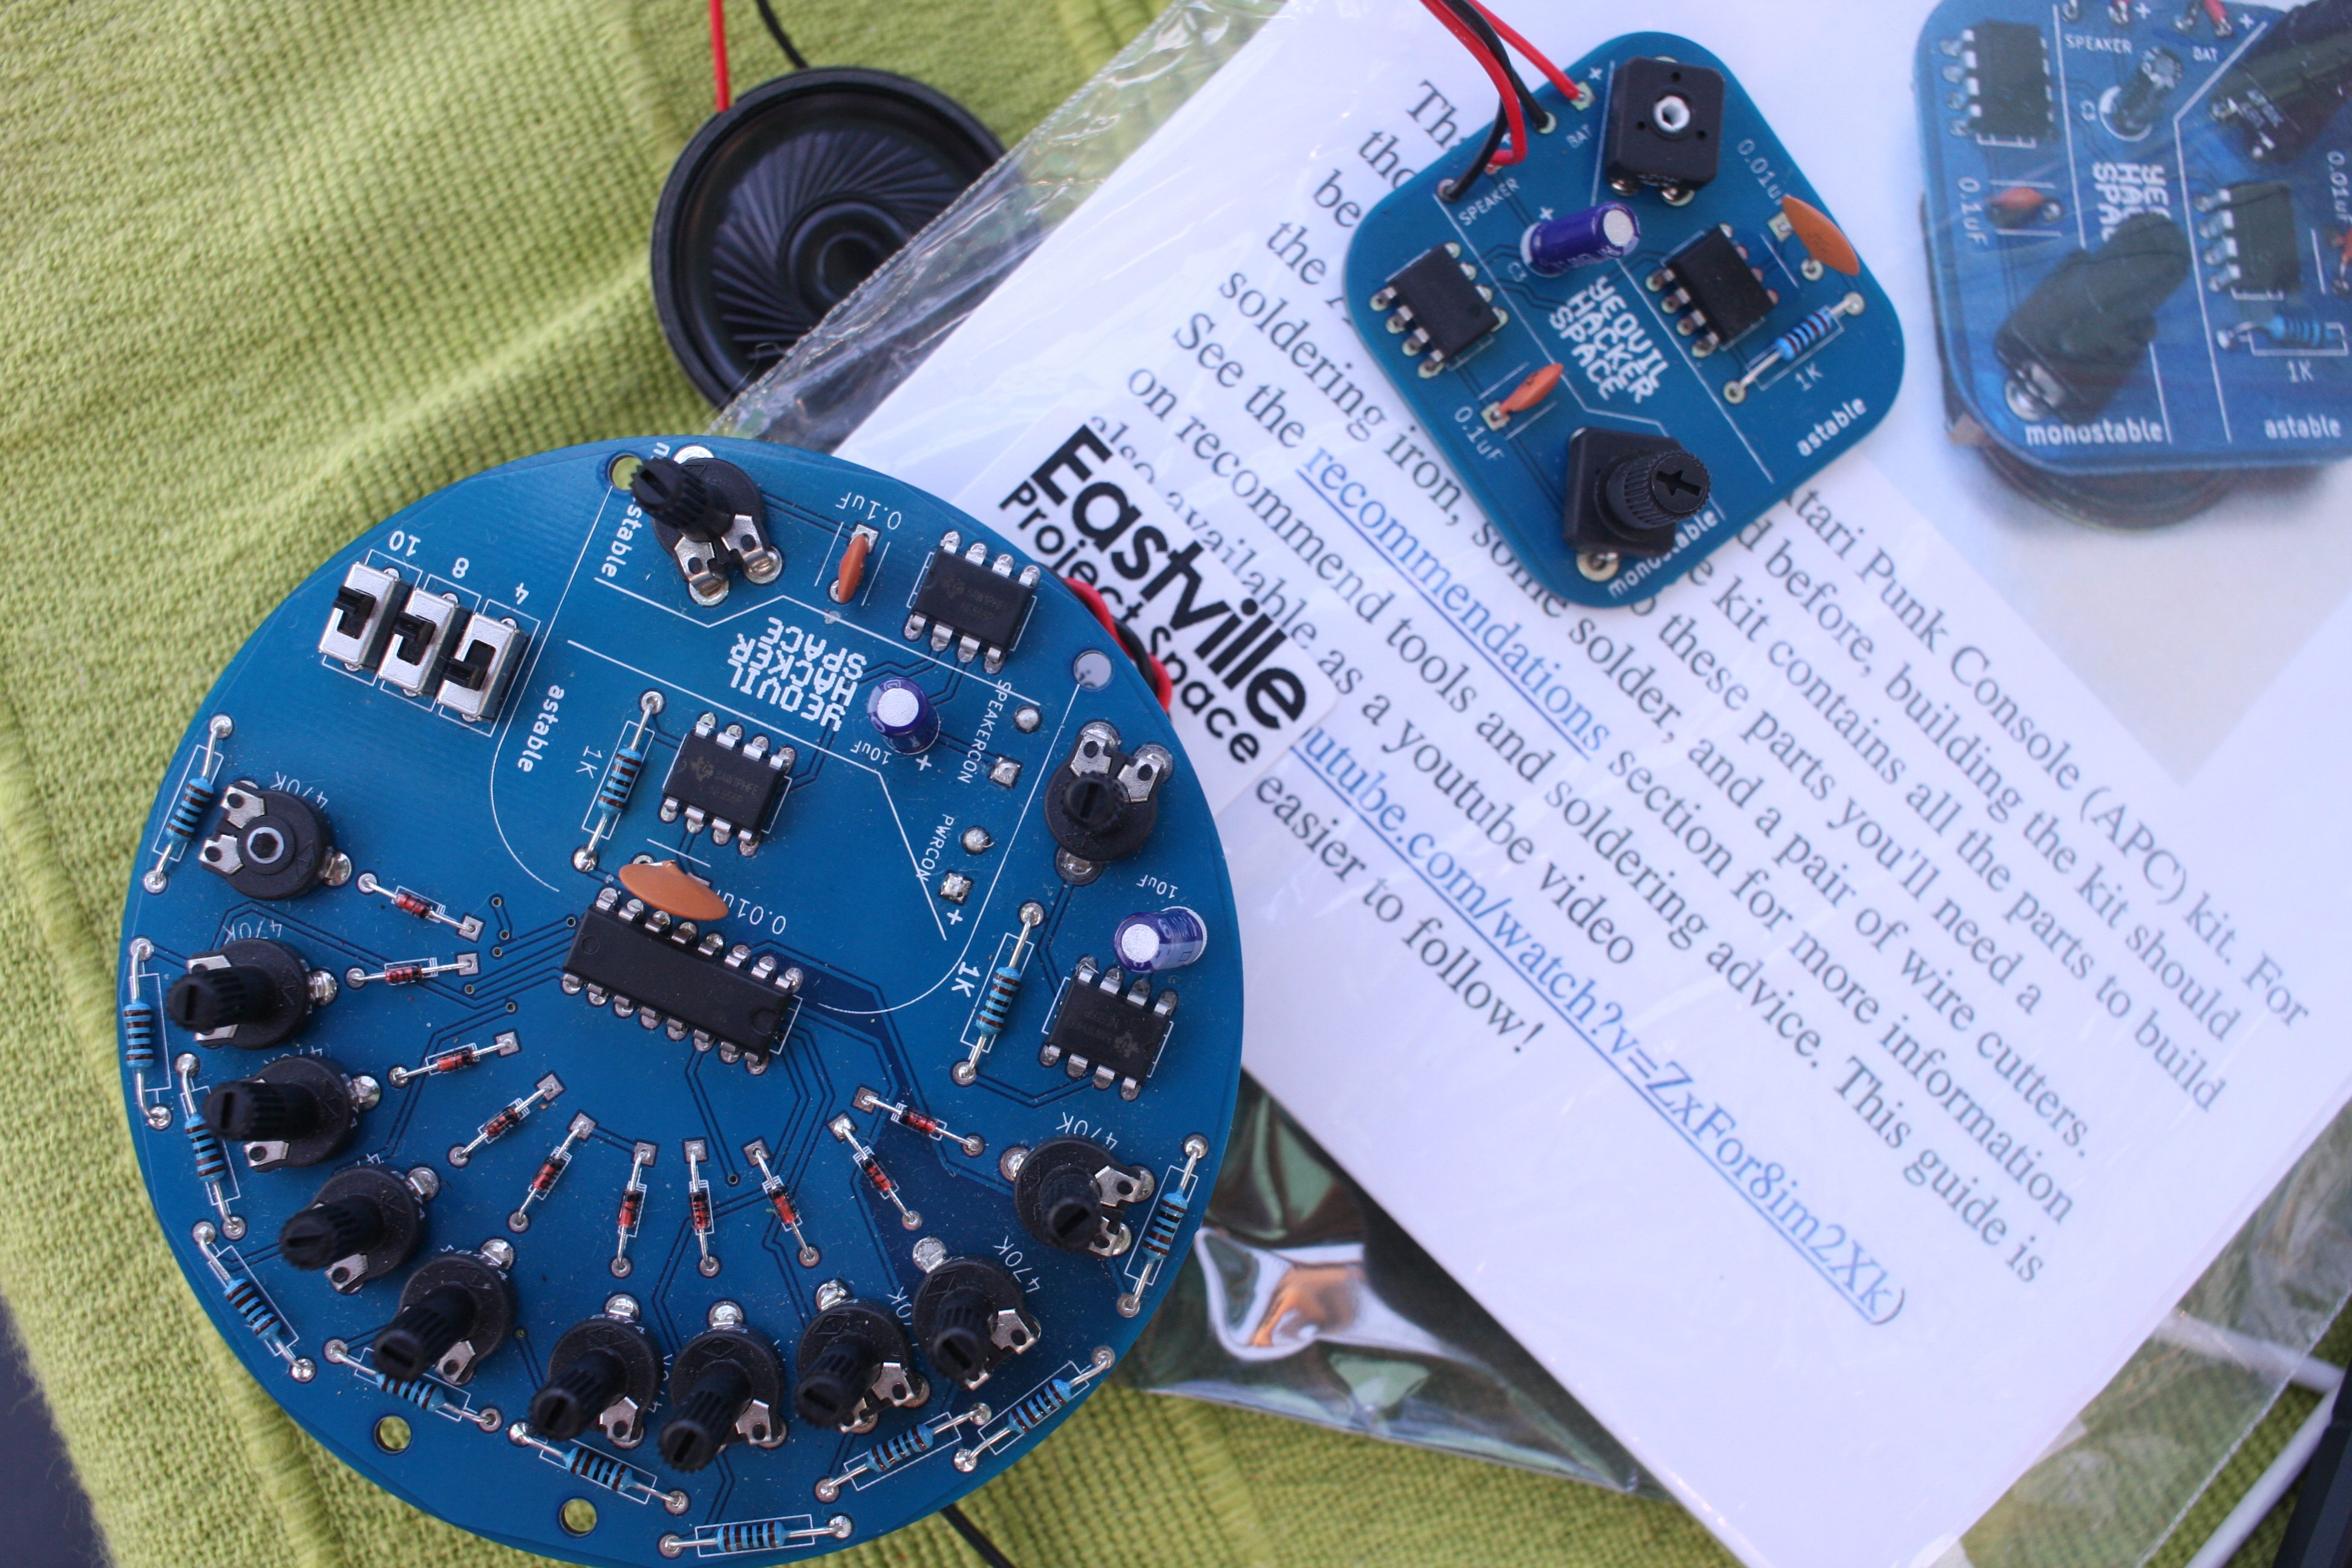 Yeovil Hacker Space Learn To Build The Atari Punk Console Electronic Circuits Synth Building Workshop And Display At Art Week Exeter